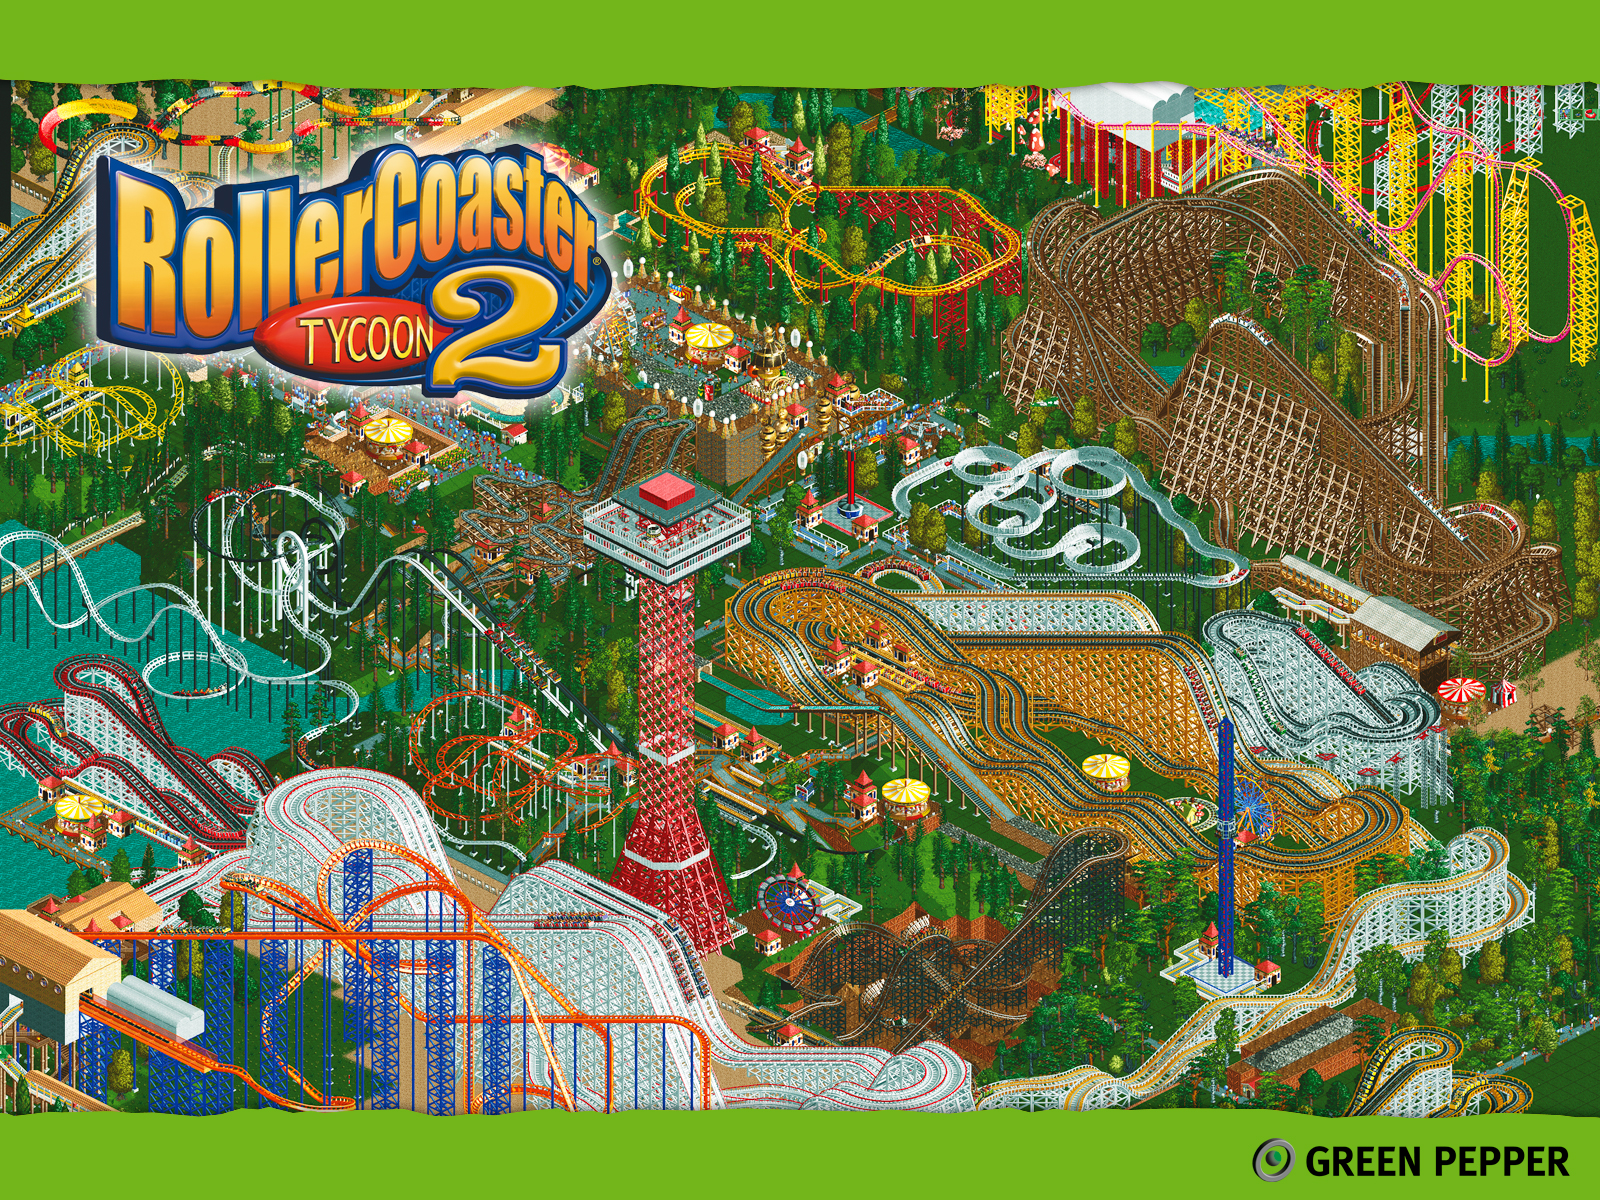 rollercoaster tycoon 2 (2002) promotional art - mobygames